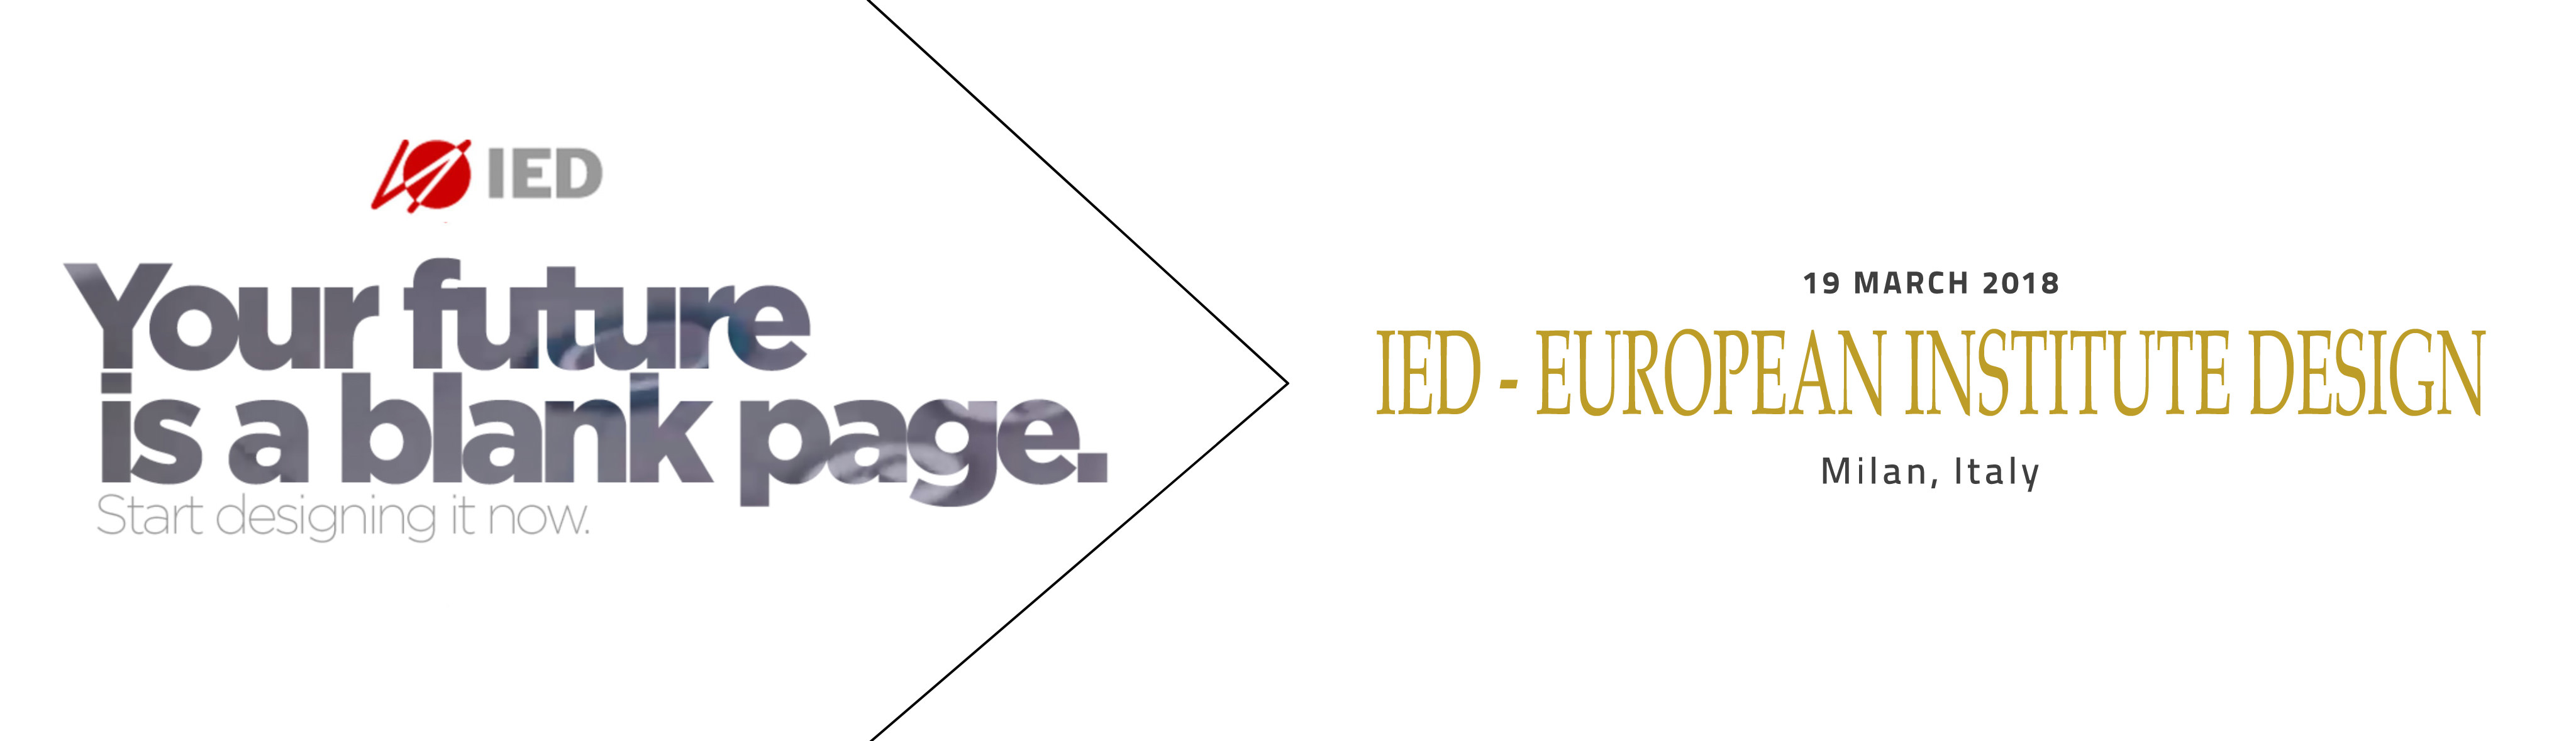 IED European Institute Design